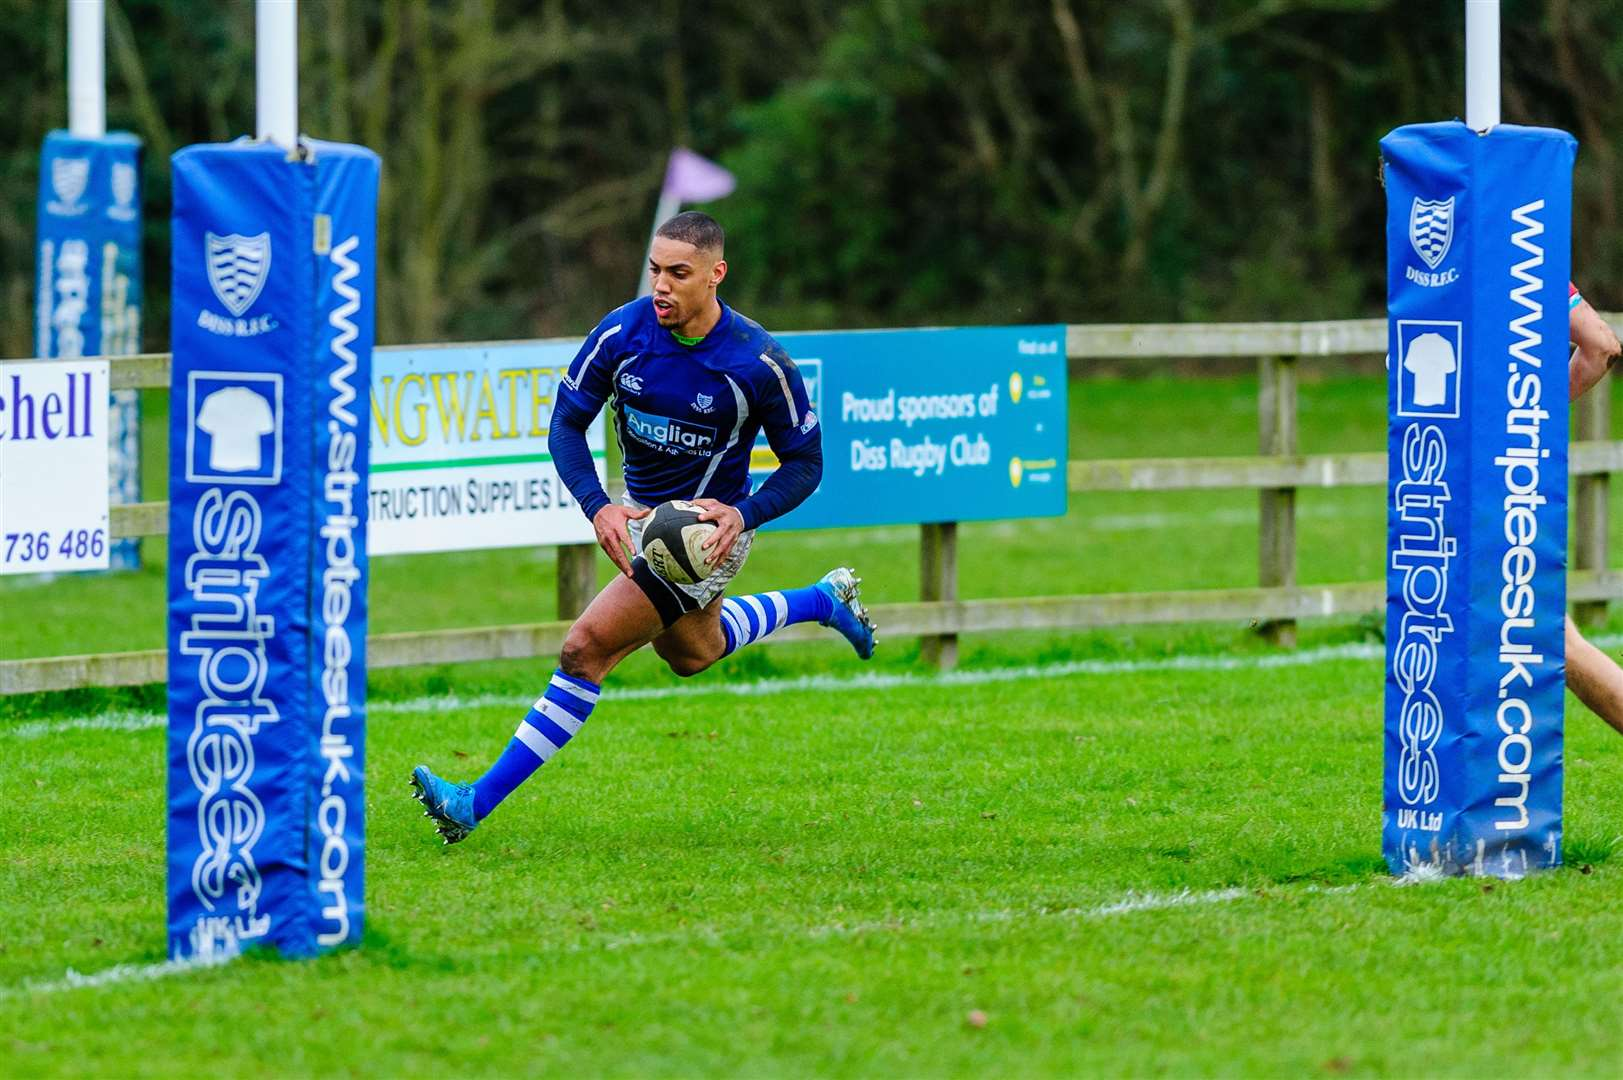 11/01/2020. Roydon, UK. ..Rugby action from Diss v Epping Upper Clapton. Shaun Blyth..Photo by Mark Bullimore. (34421512)